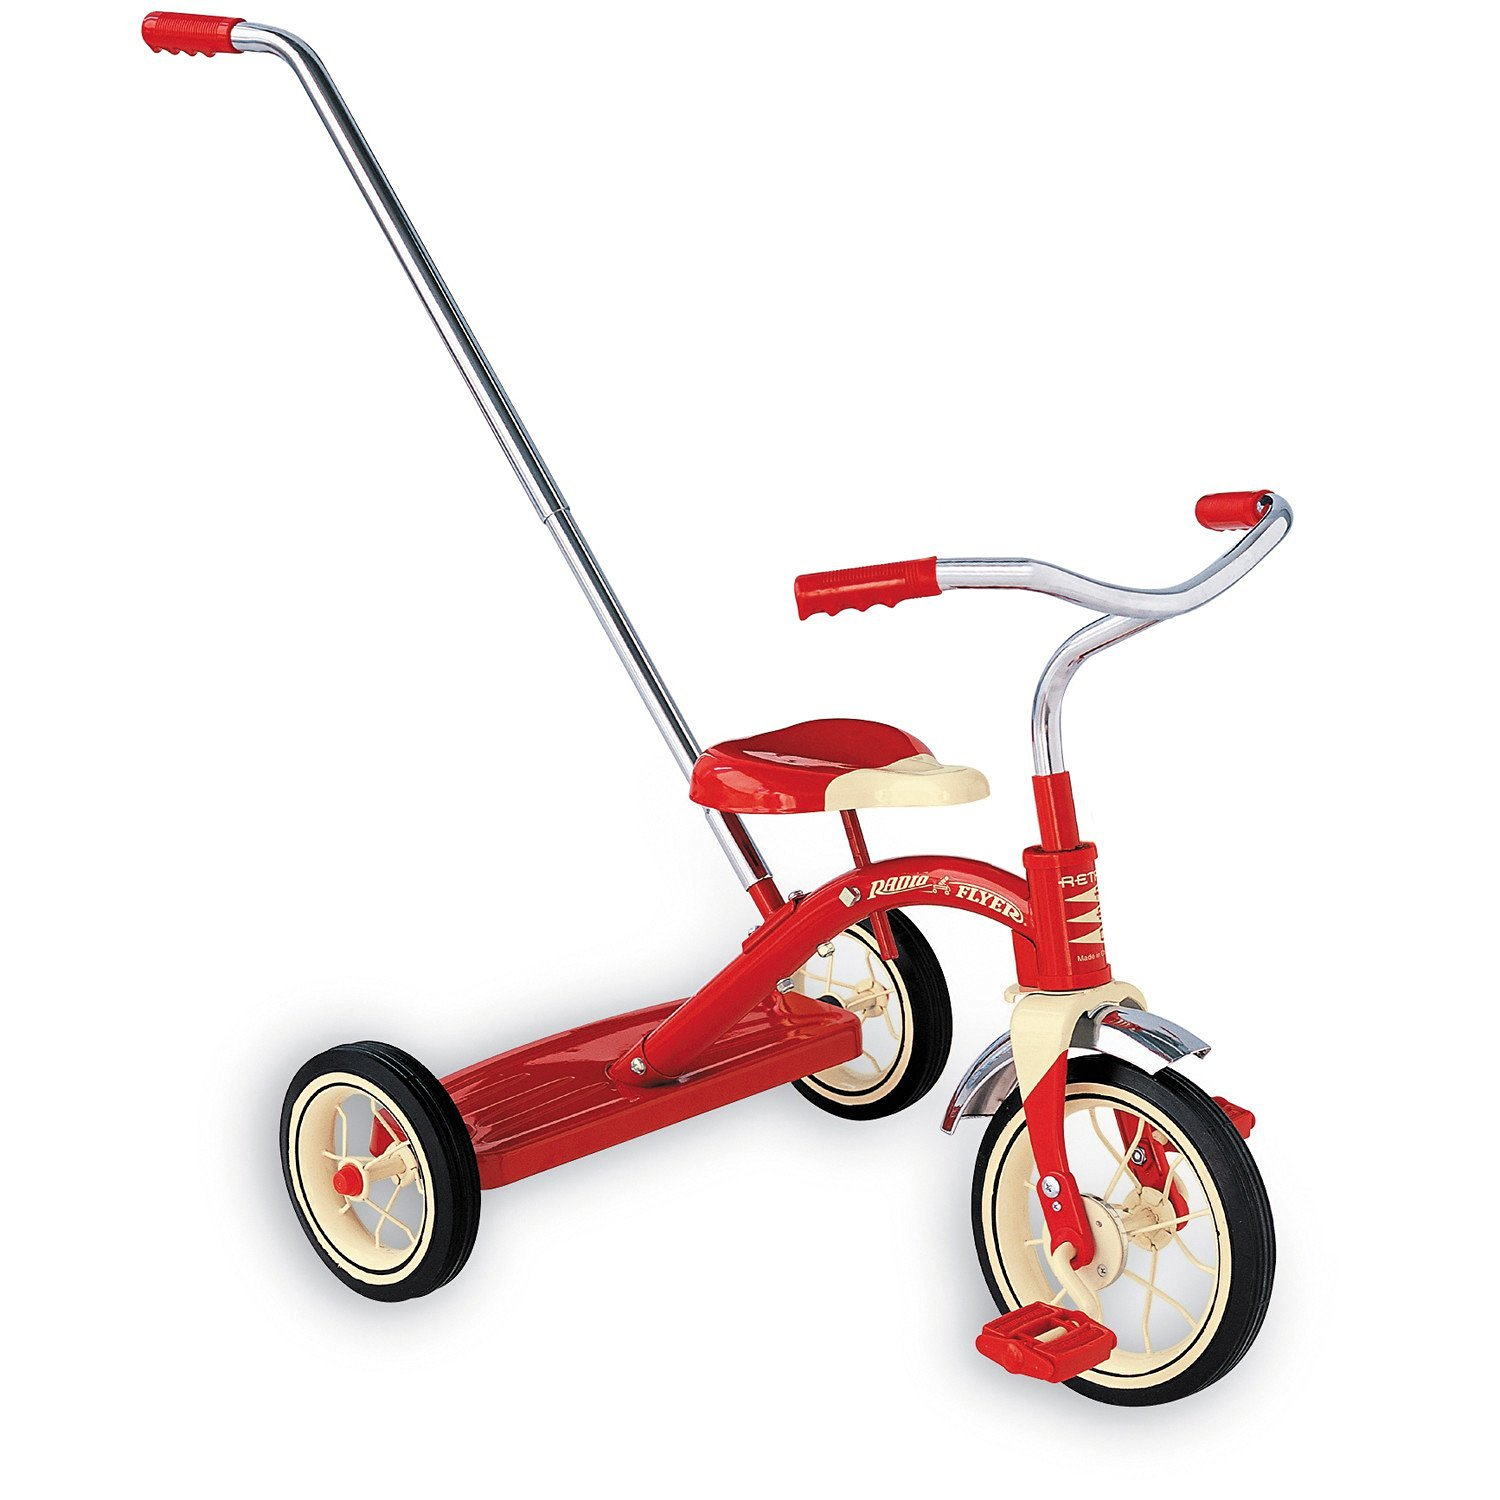 Radio Flyer Classic Tricycle with Push Handle, Kids Tricycle